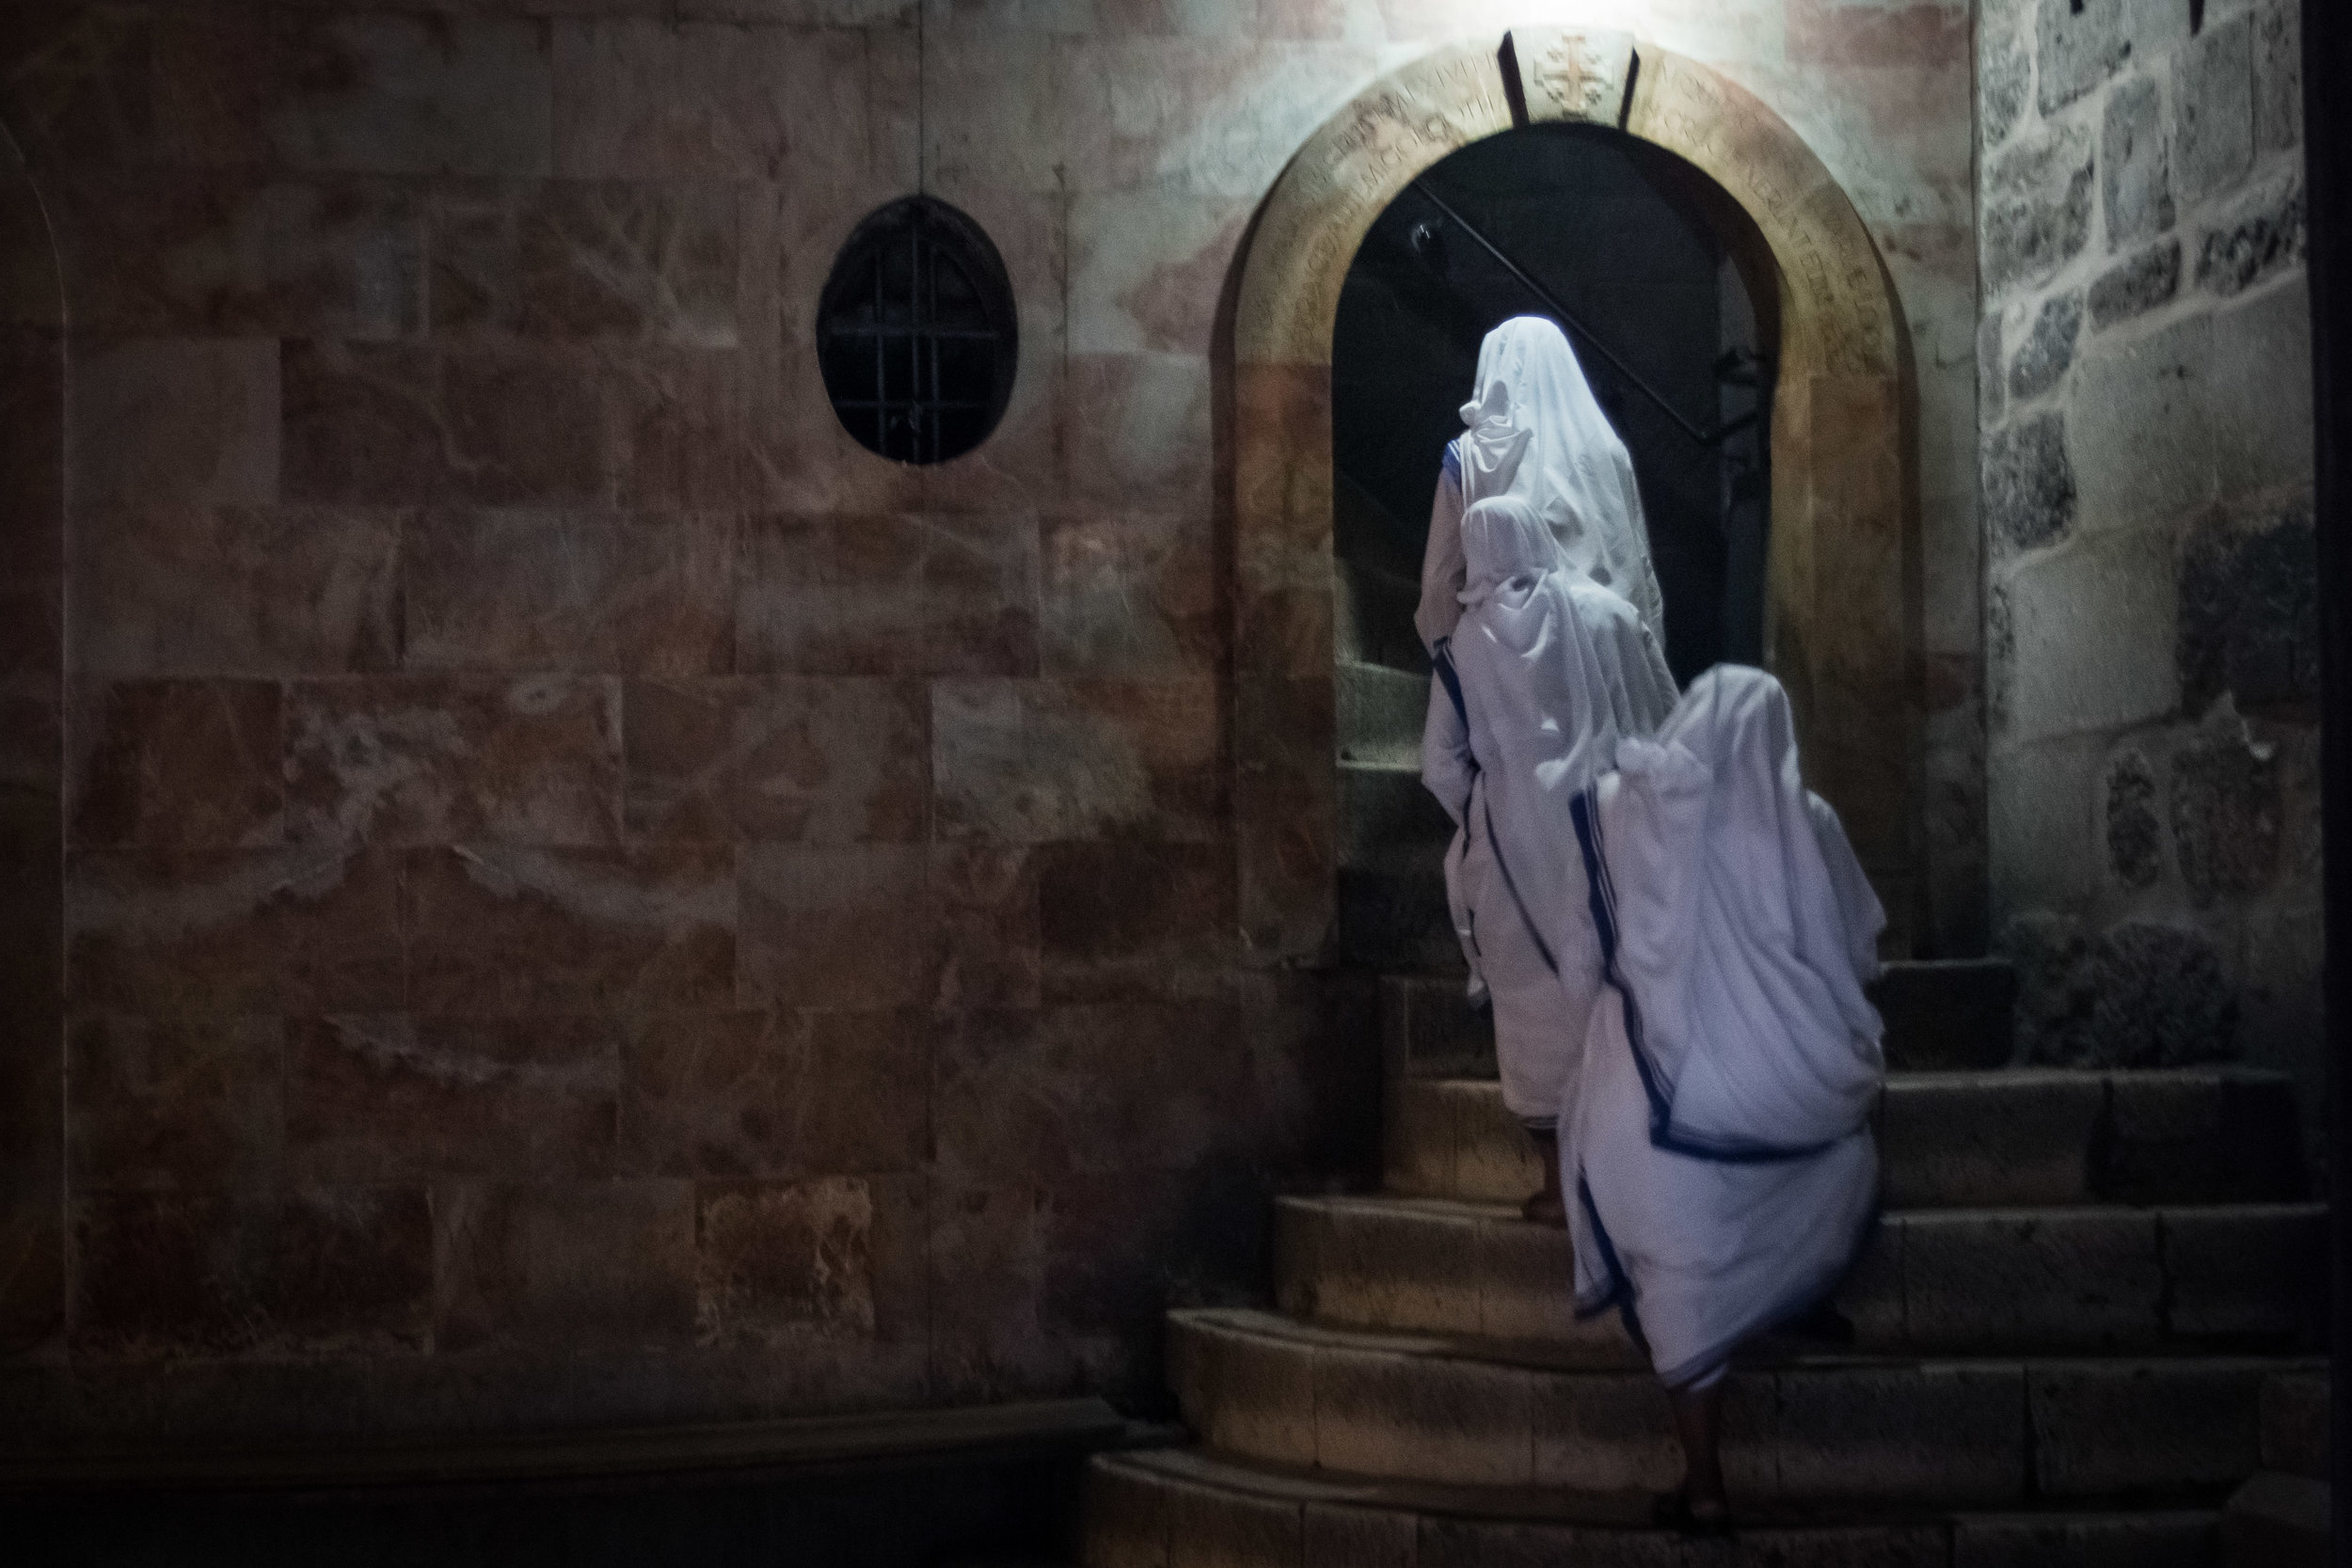 Christian nuns ascend the steps leading to Calvary inside the Holy Church of the Sepulchre in the Old City of Jerusalem, July 28, 2016. The shrine is where Jesus was said to have been crucified before being embalmed at buried in his tomb nearby.